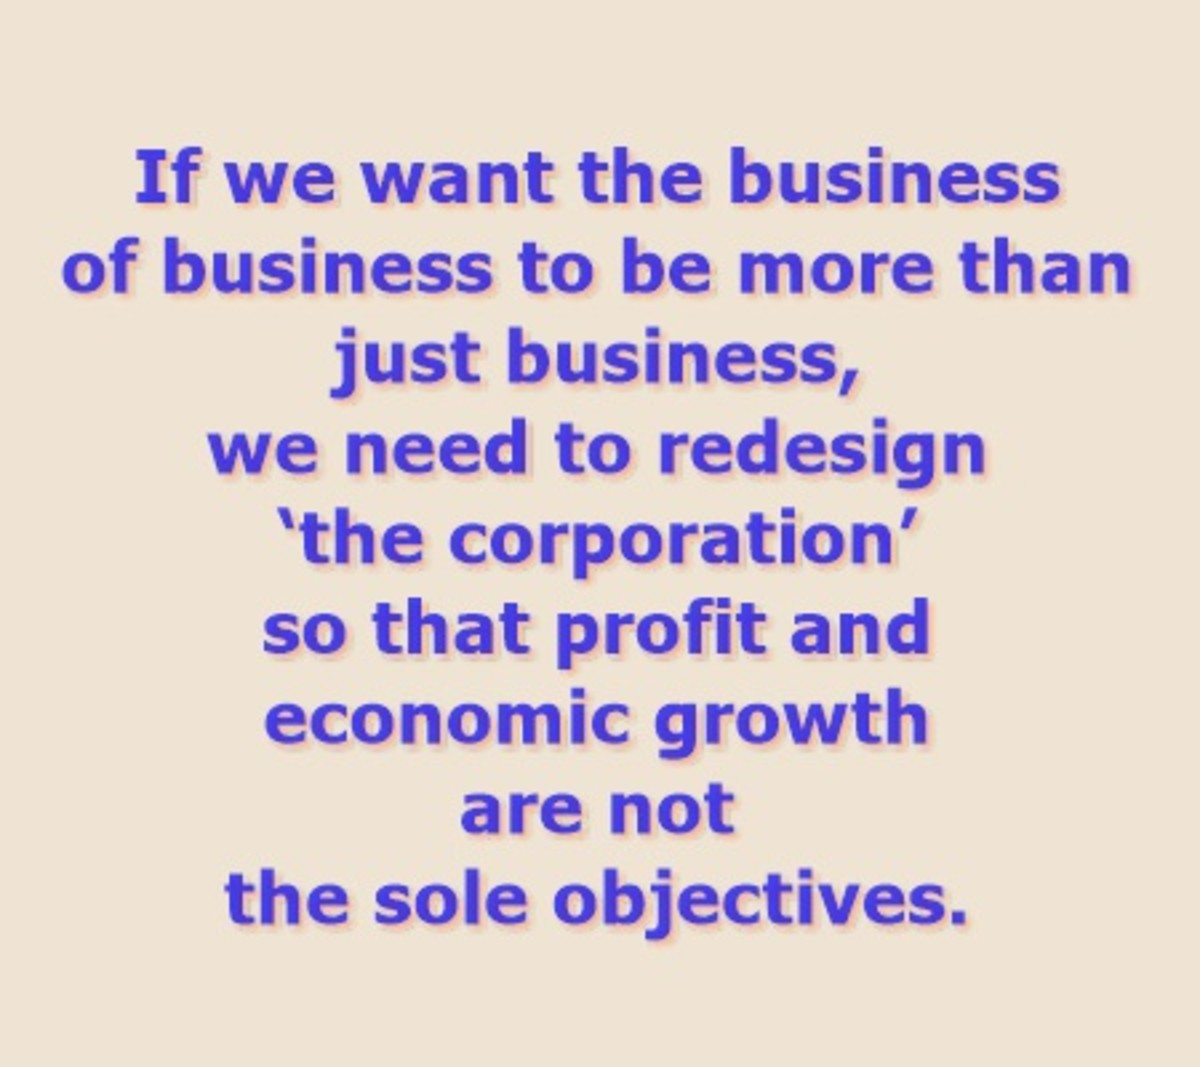 Businesses can be redesigned, if we wish.